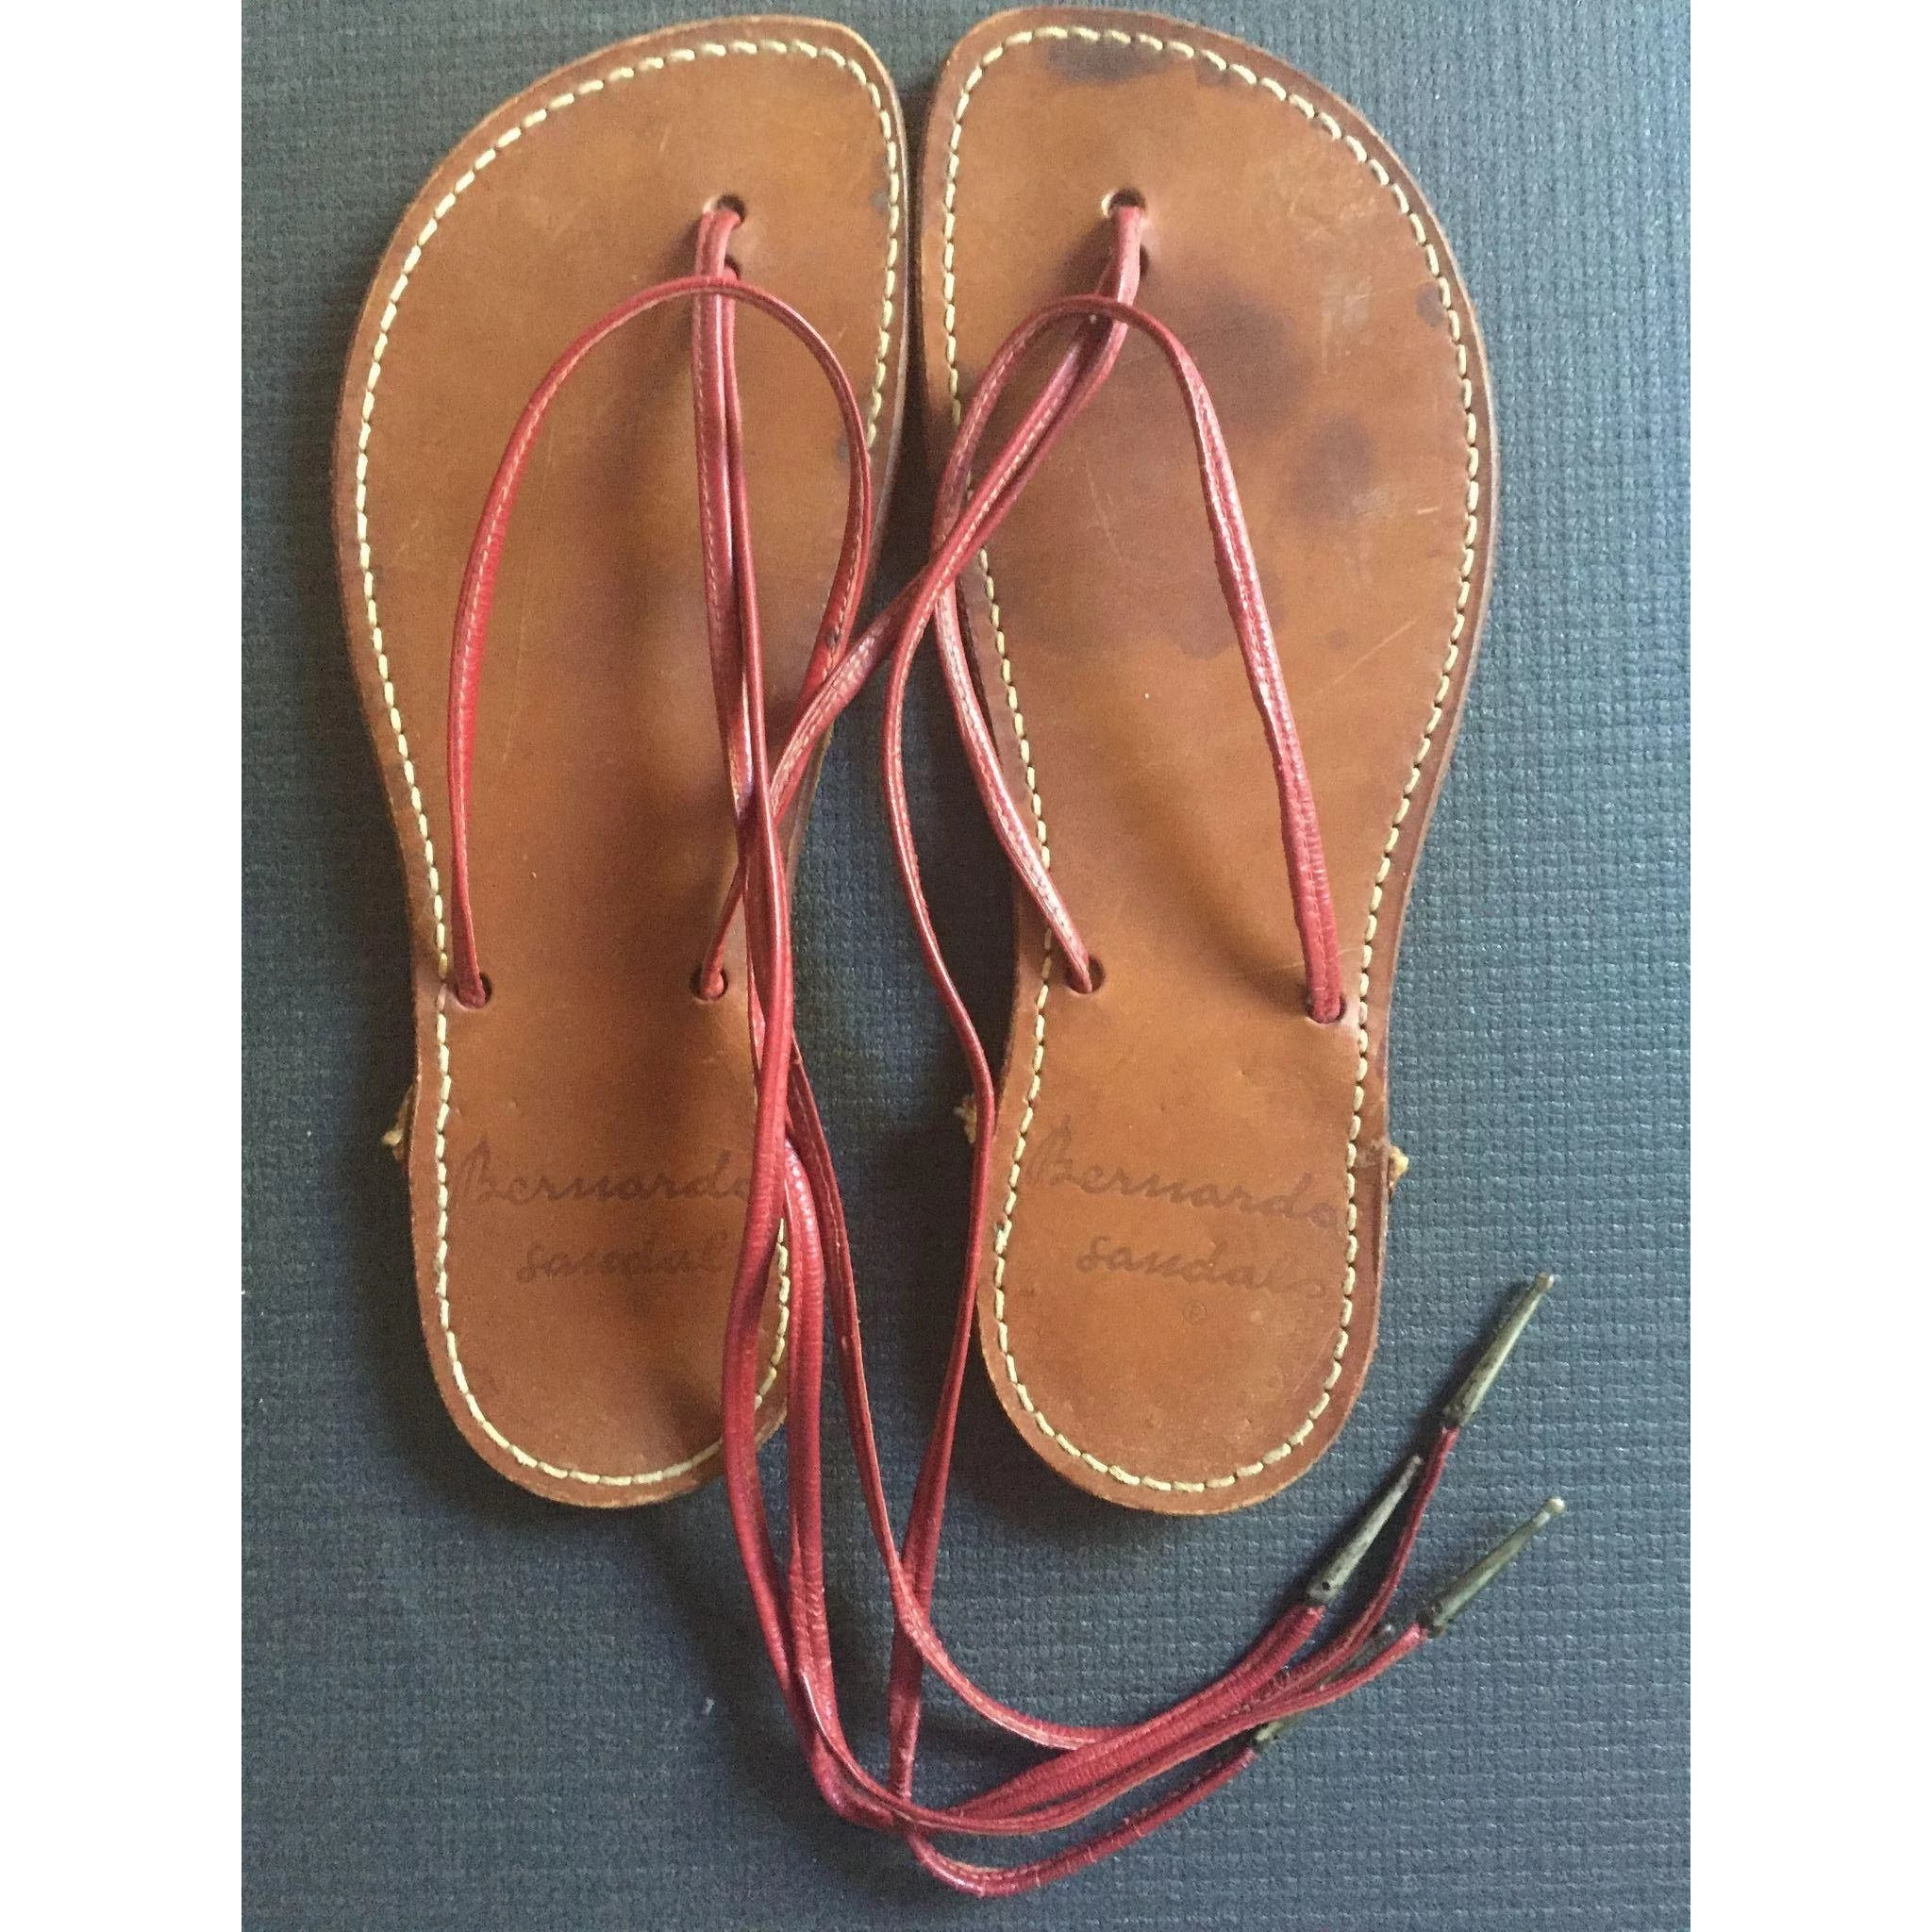 59004fbe0a7 RARE EARLY Bernardo Leather Sandals   Curated Curios and Antiques by Joan